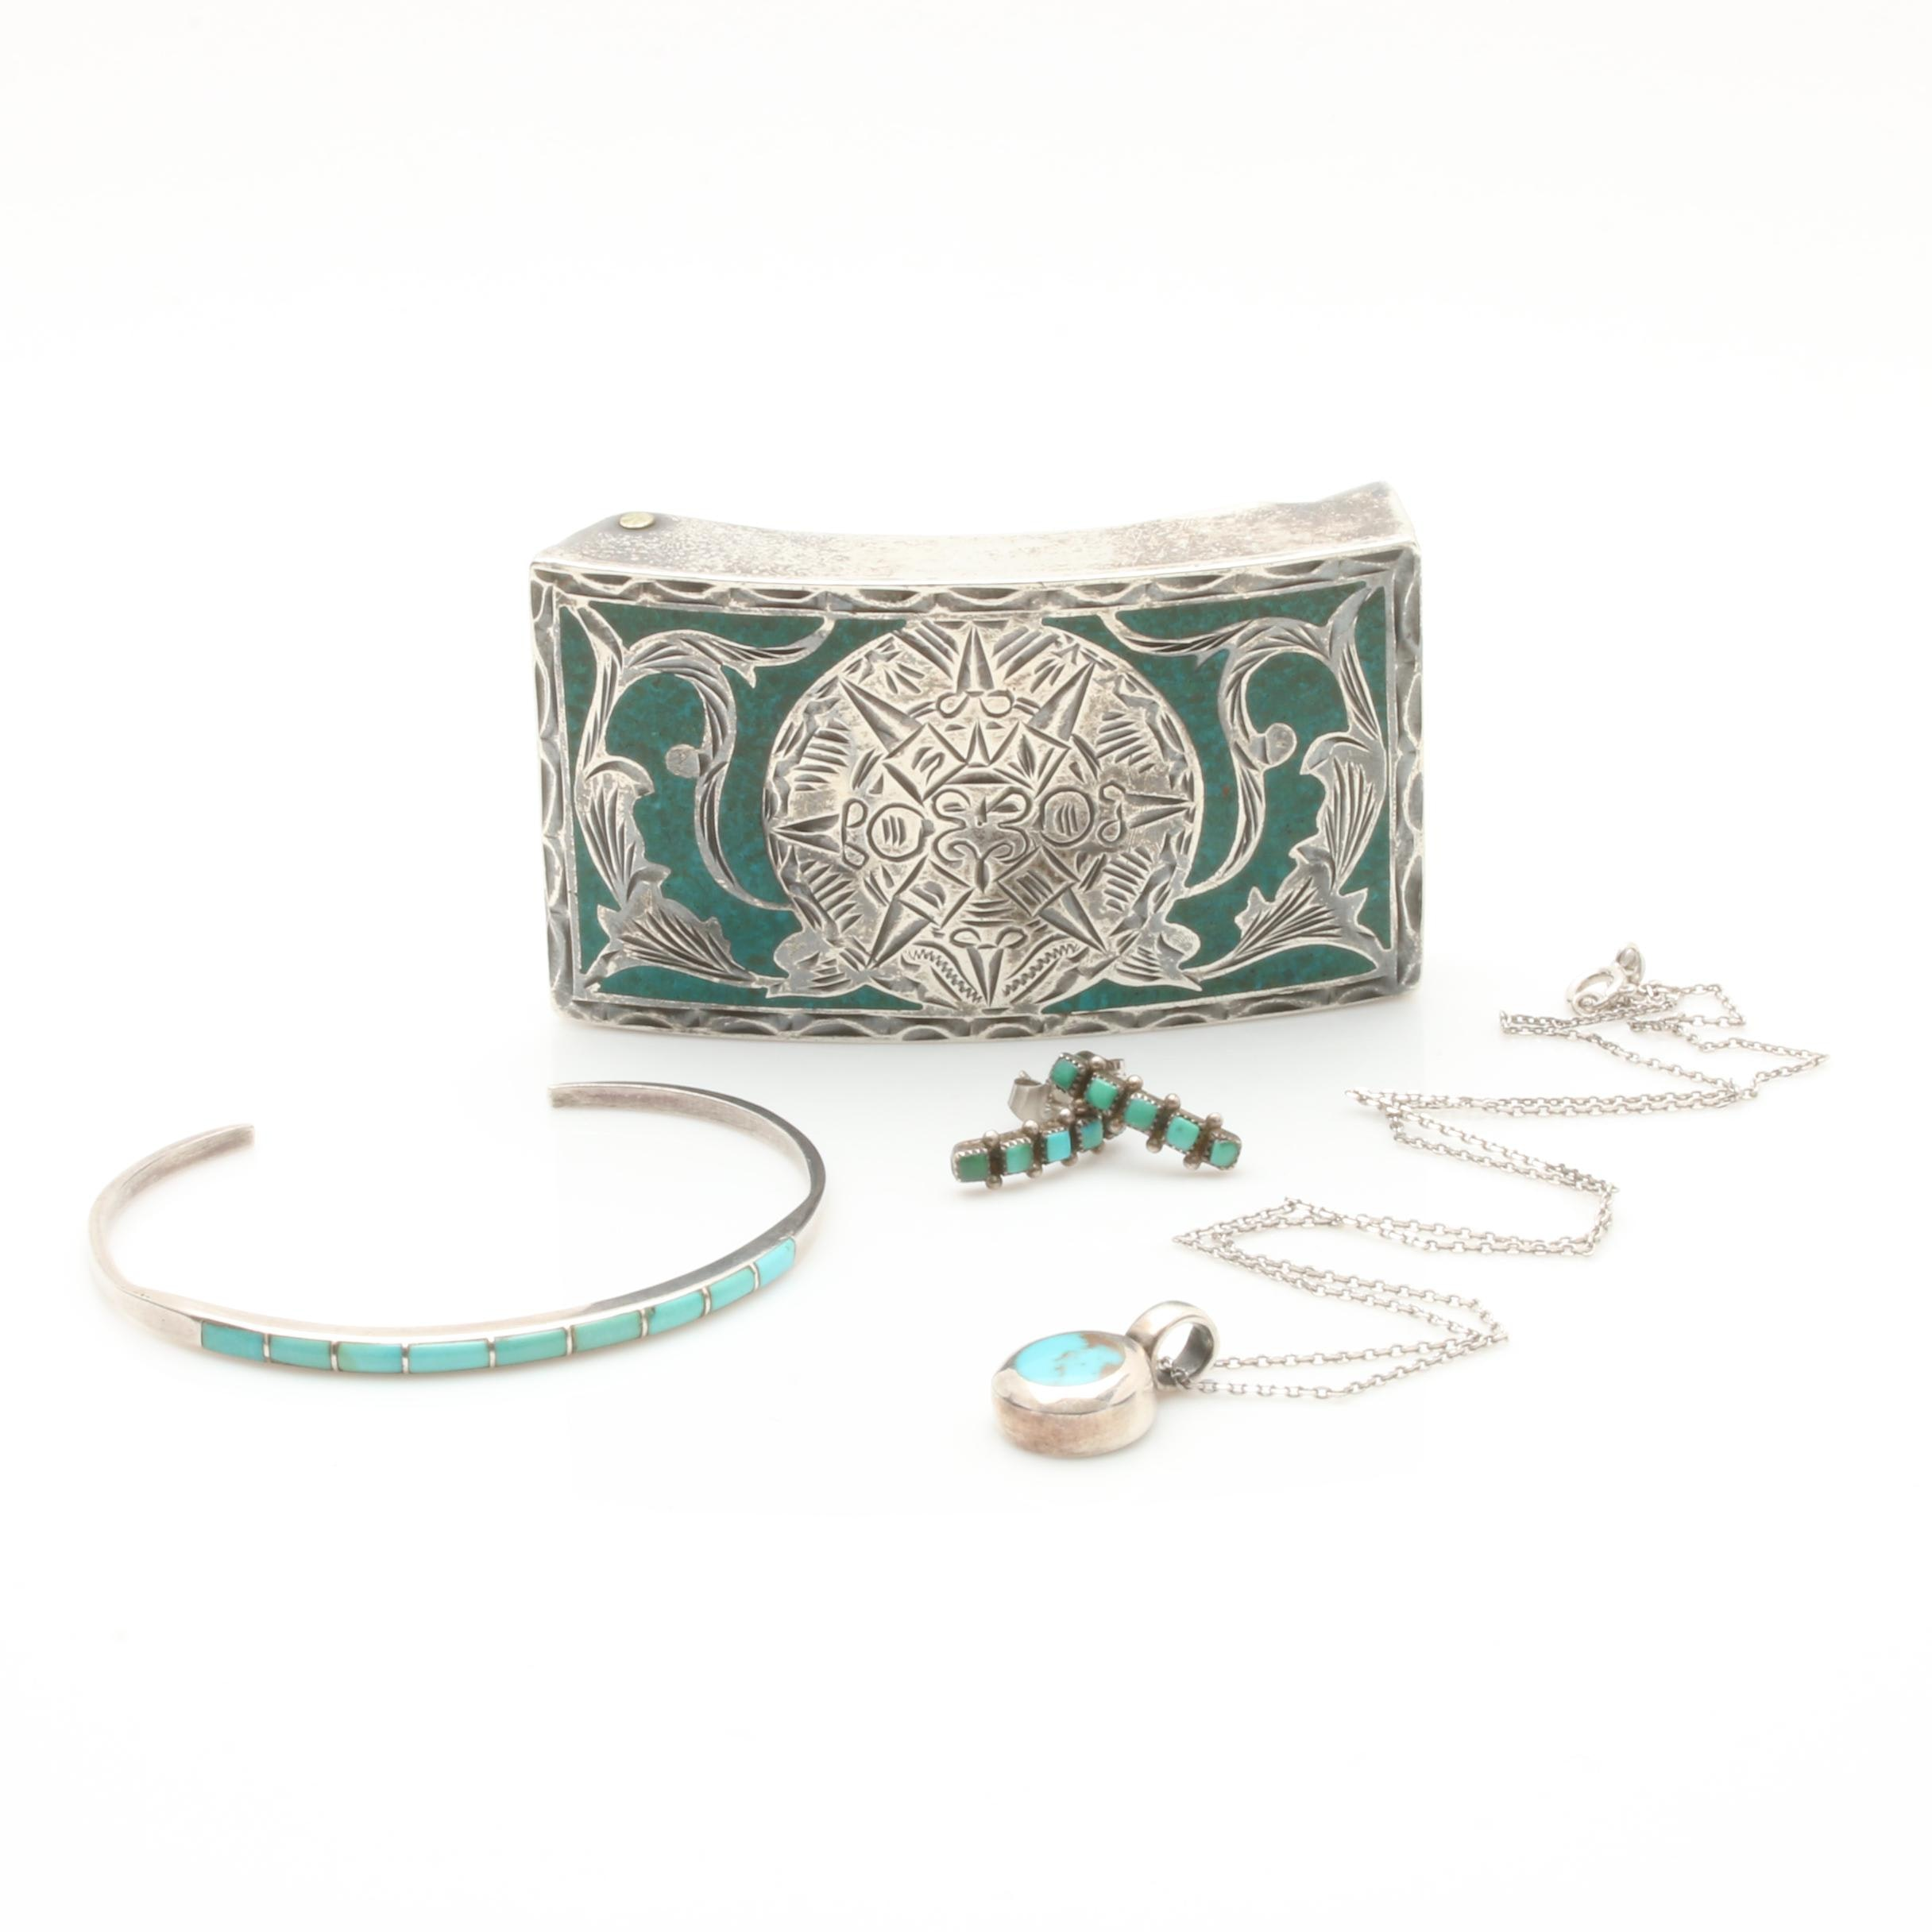 Southwestern Style Sterling Silver Turquoise Jewelry with Jalisco Belt Buckle